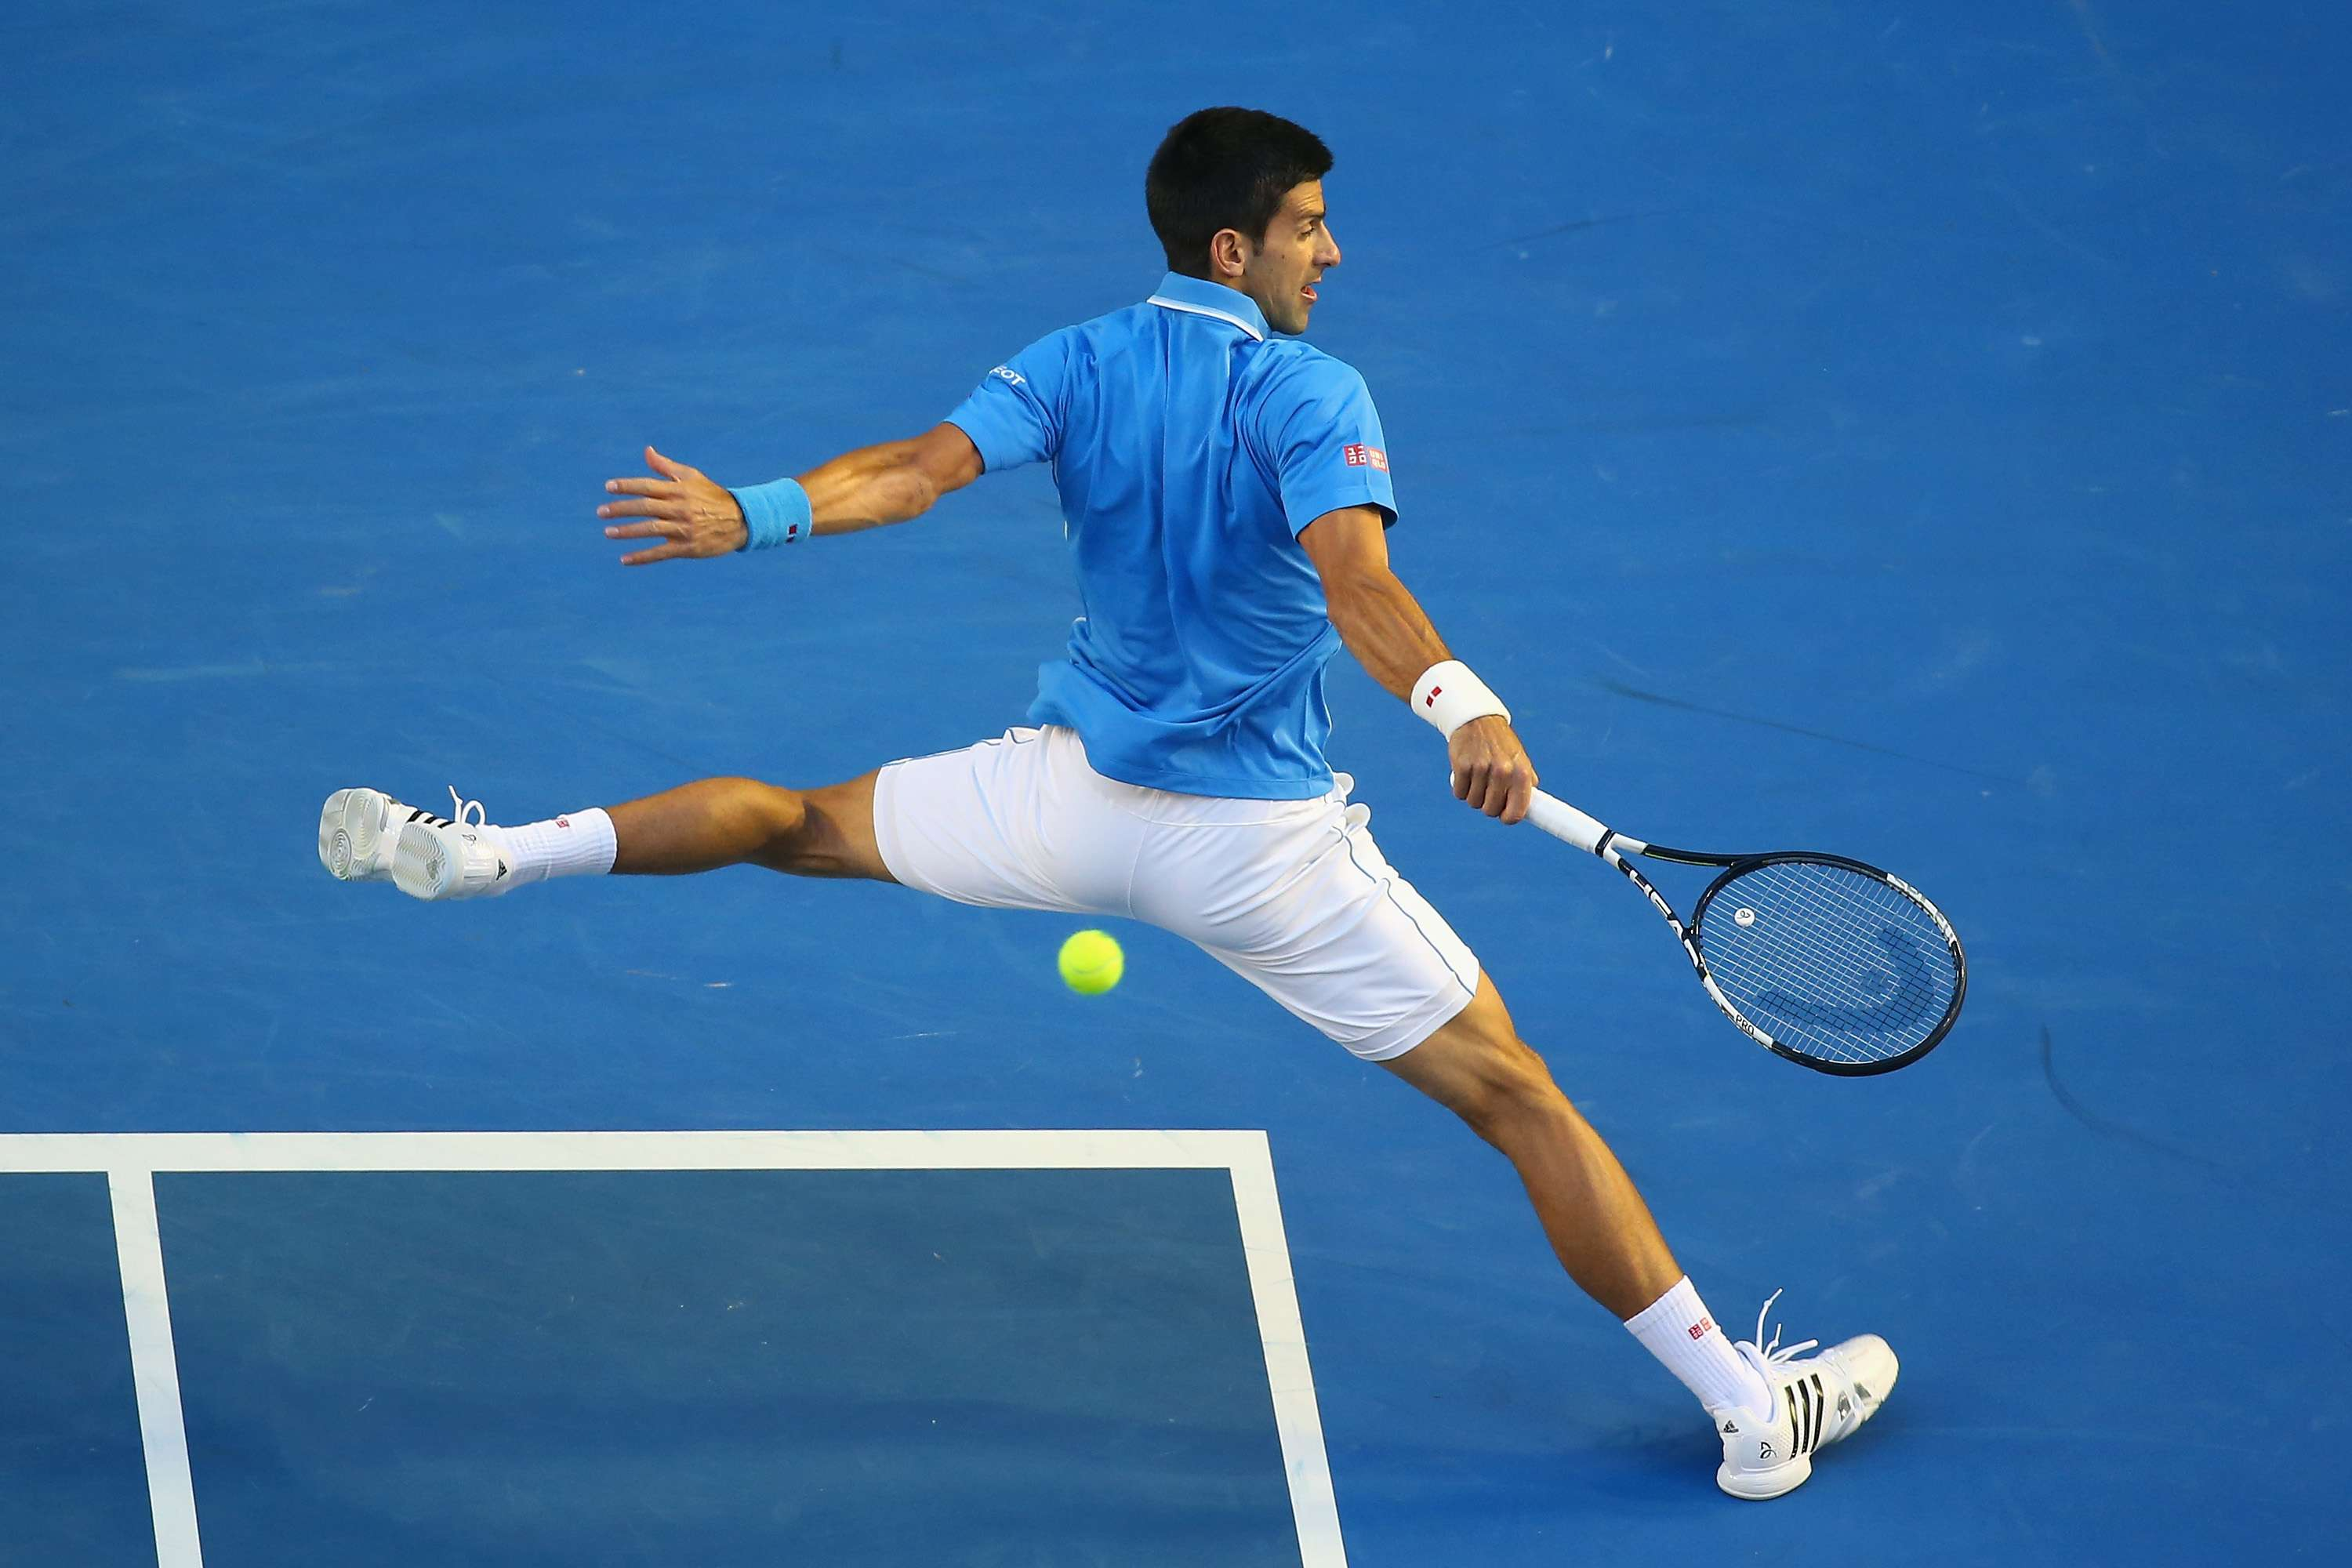 Djokovic dio una exhibición ante Raonic. Foto: Getty Images